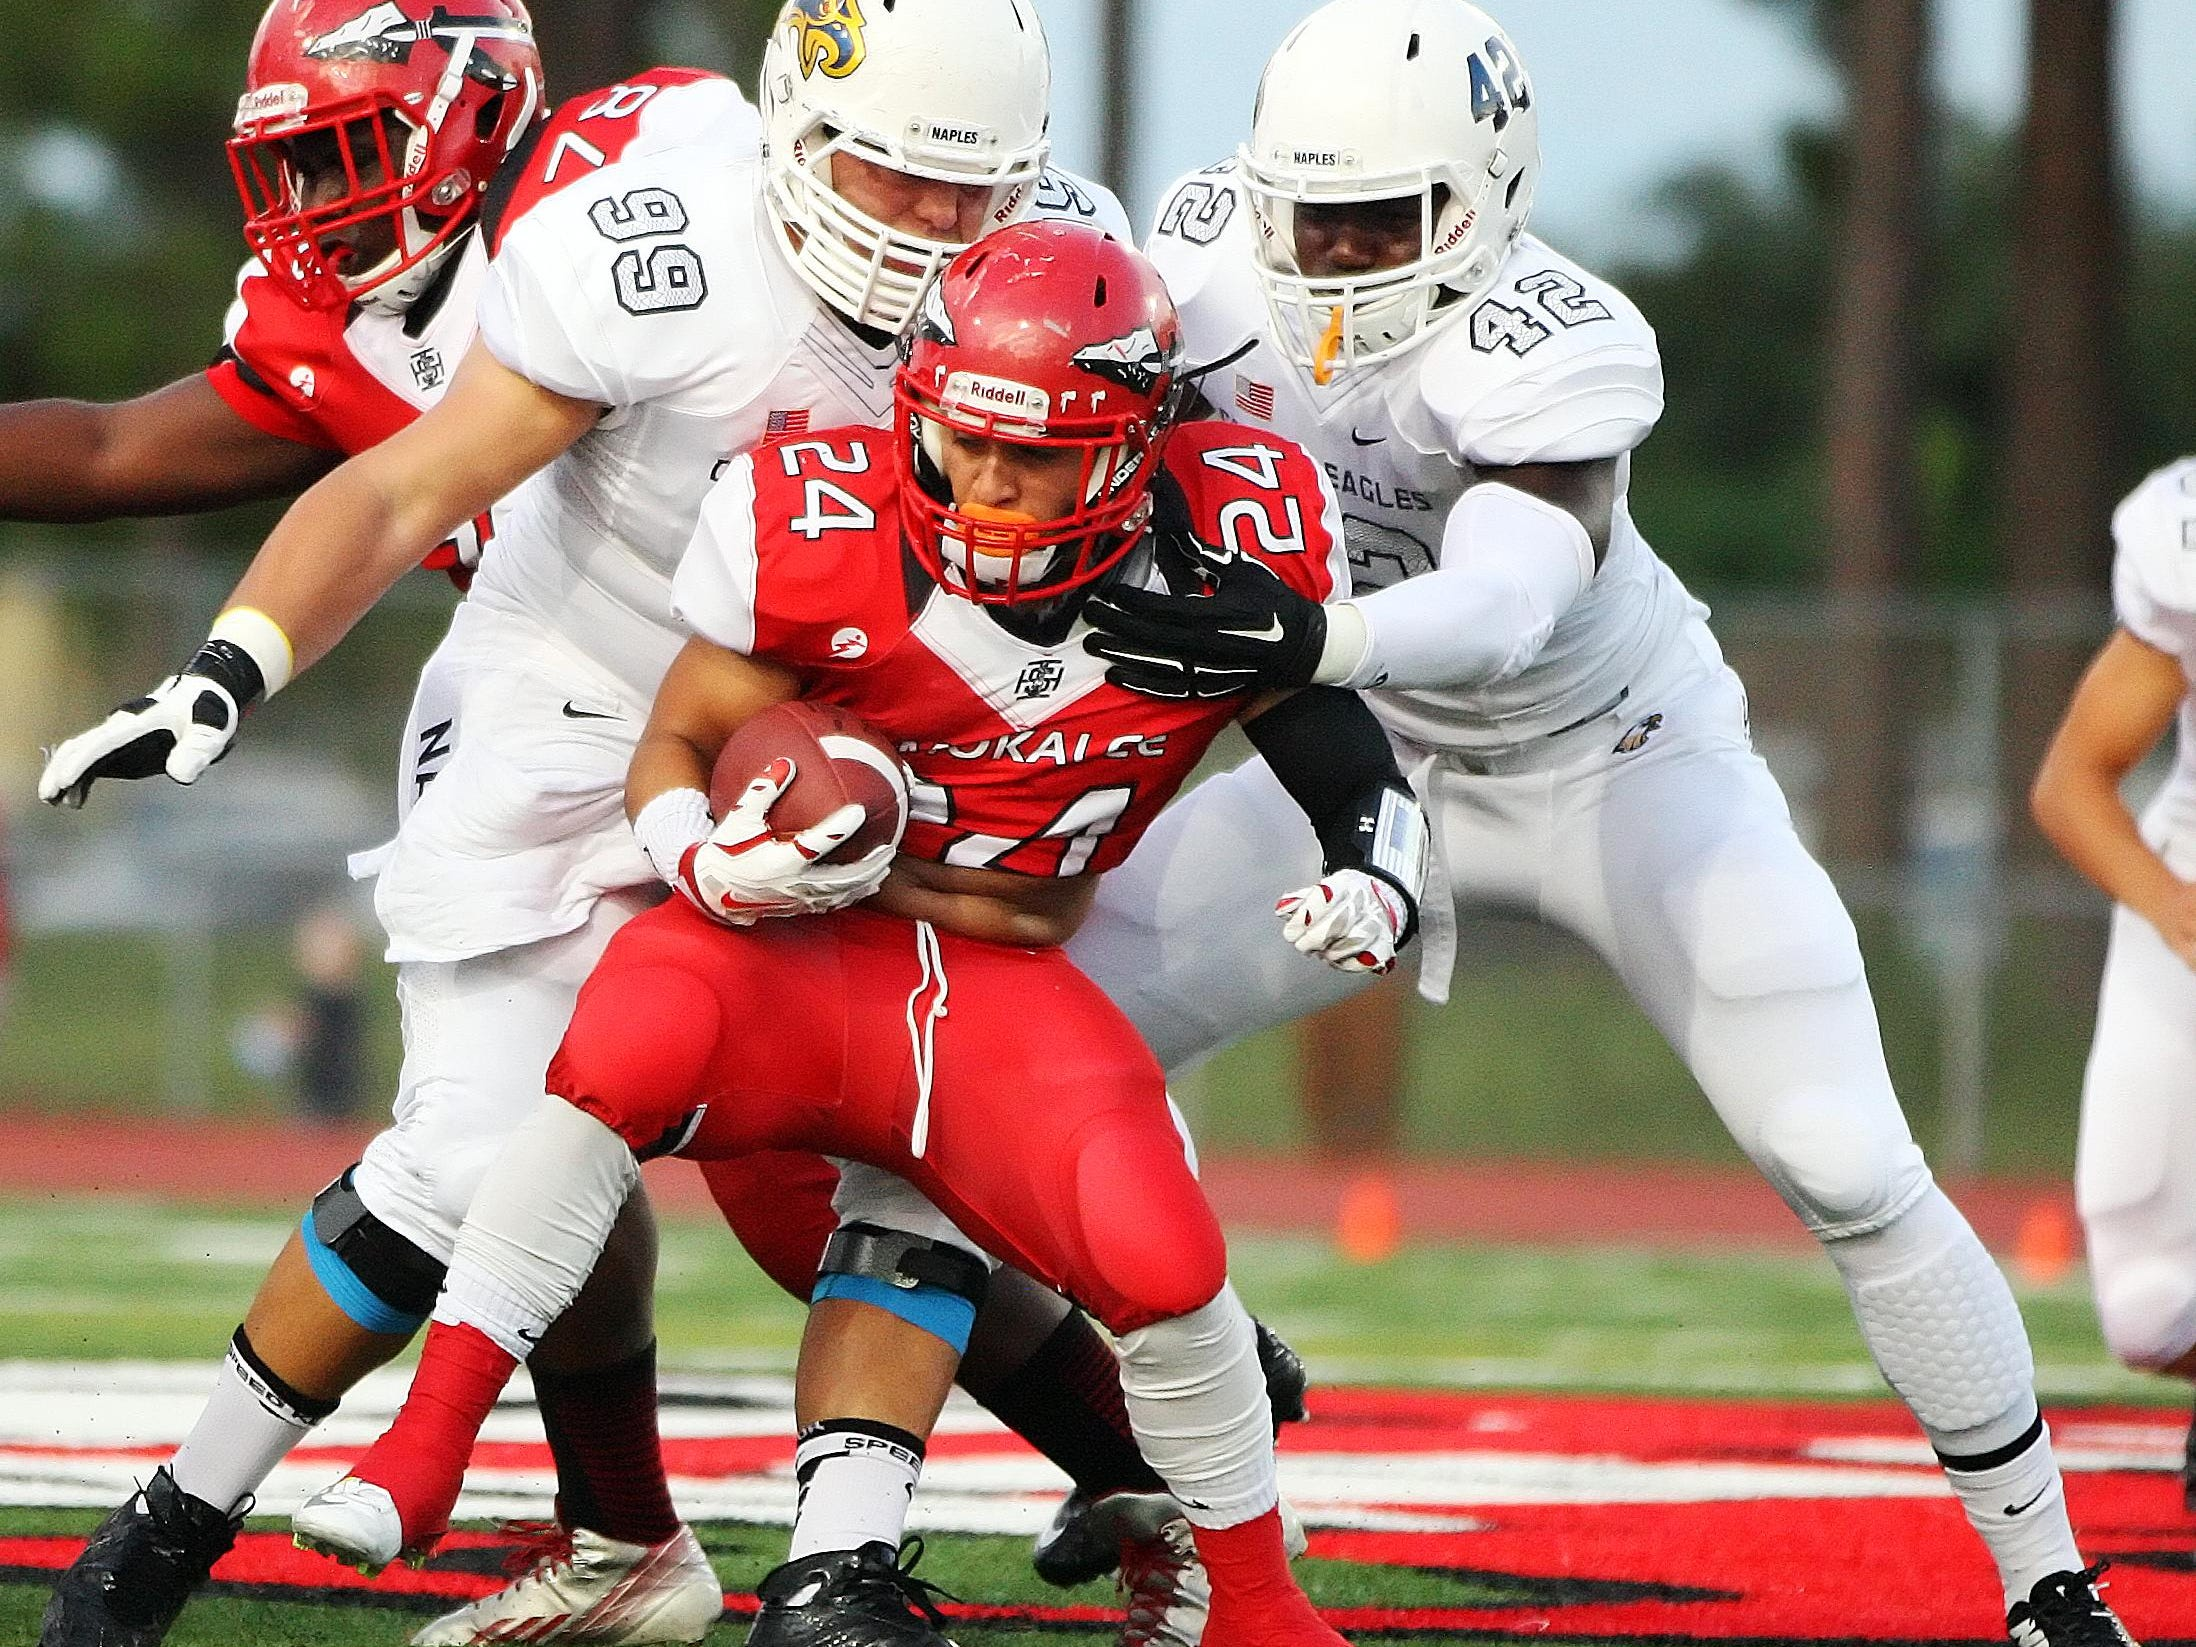 Naples High School defenders Crandall Maines, left, and Wycleff Phanor tackle Immokalee's John Garza on Friday at Immokalee High School. Naples beat Immokalee 63-7.